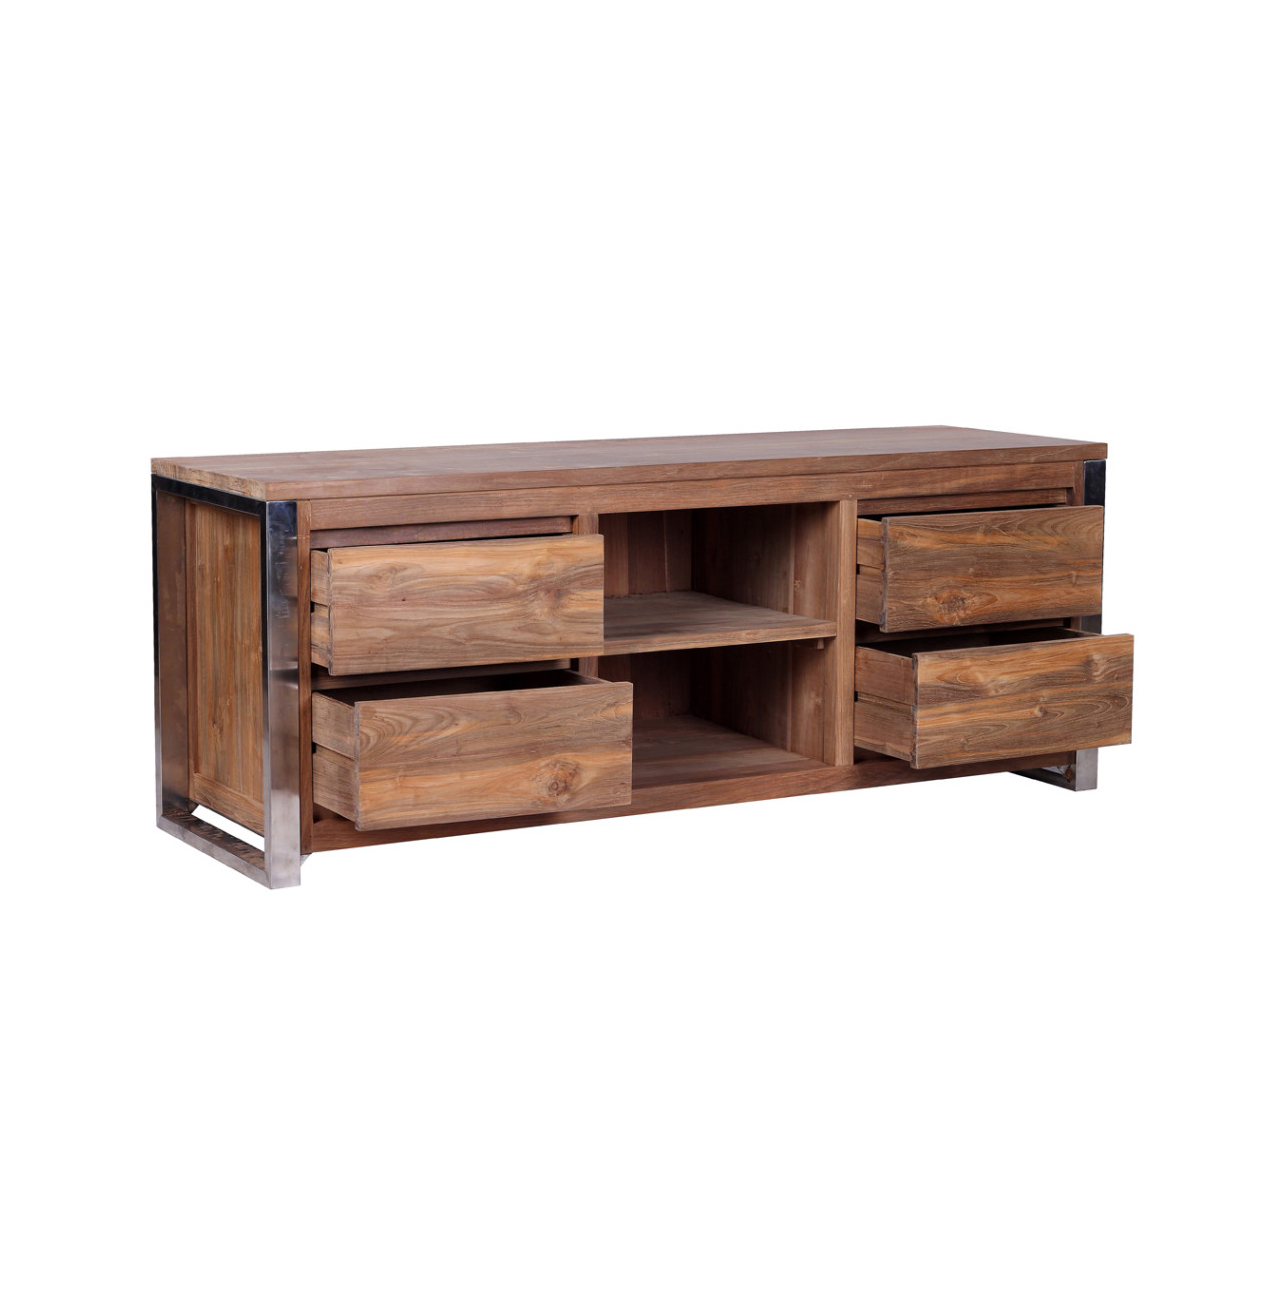 Rustic Wood Tv Cabinets Intended For Favorite Rarem Reclaimed Wood Tv Stand – Reclaimed Teak And Stainless Steel (Gallery 5 of 20)